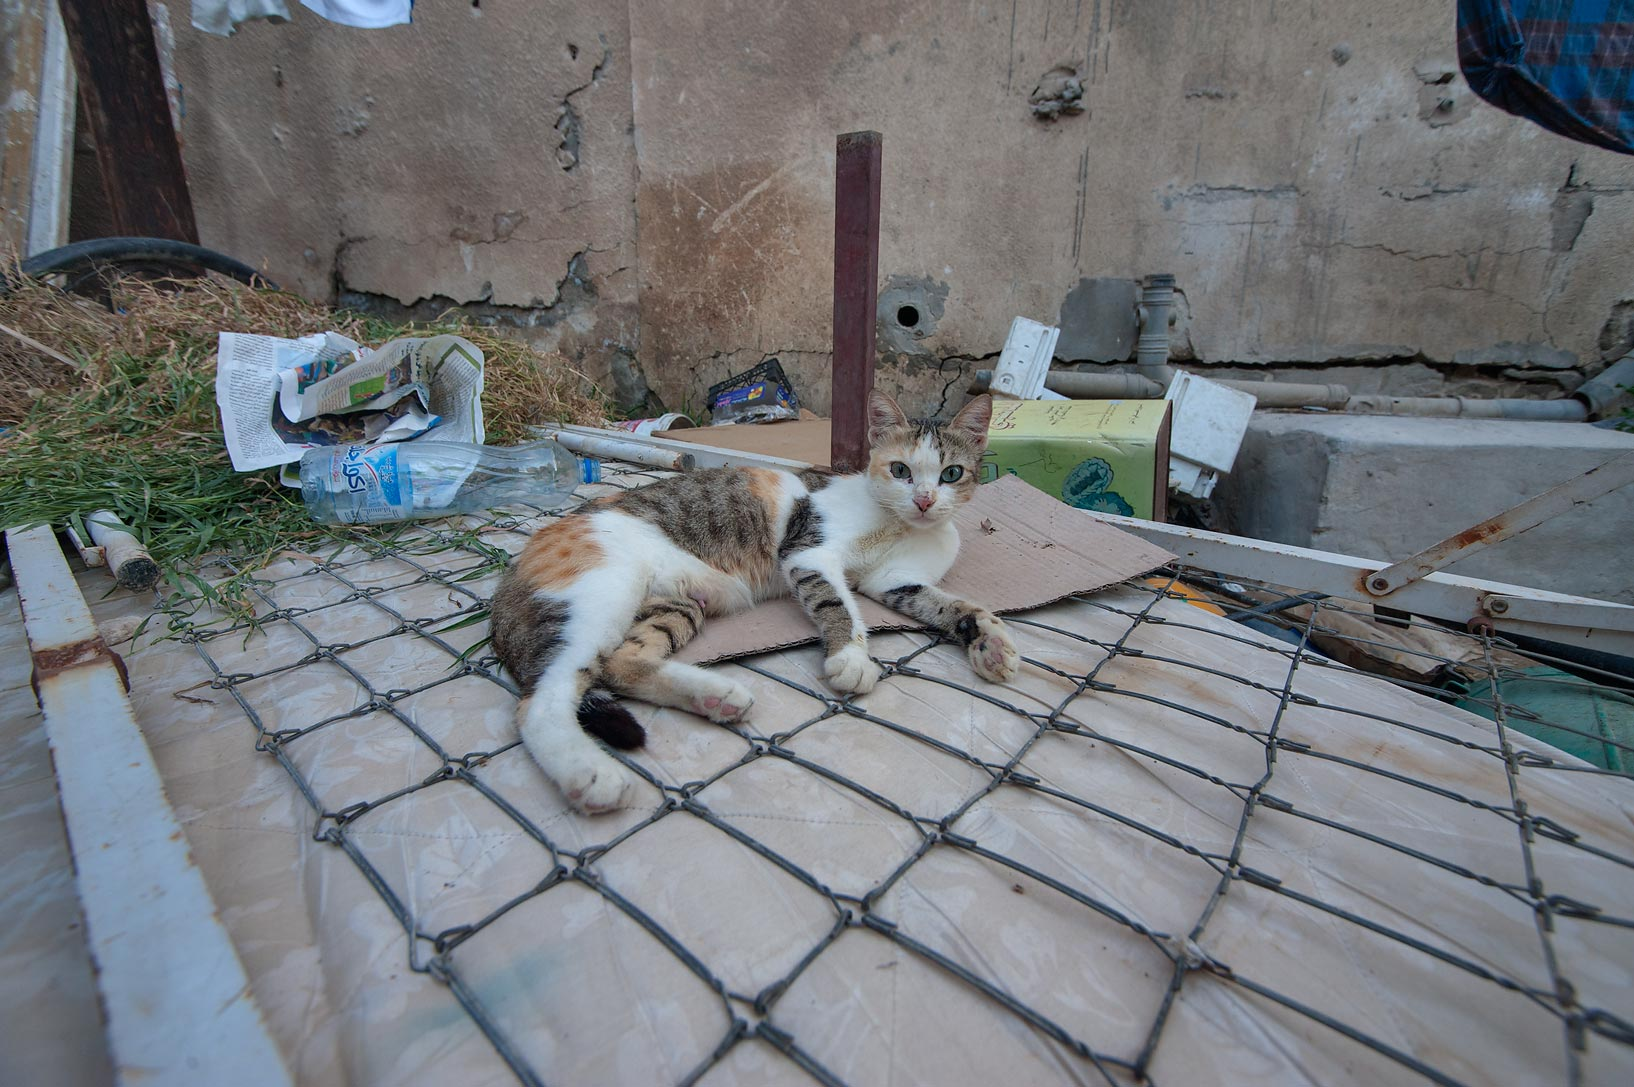 Cat resting on a bed frame in Musheirib area. Doha, Qatar